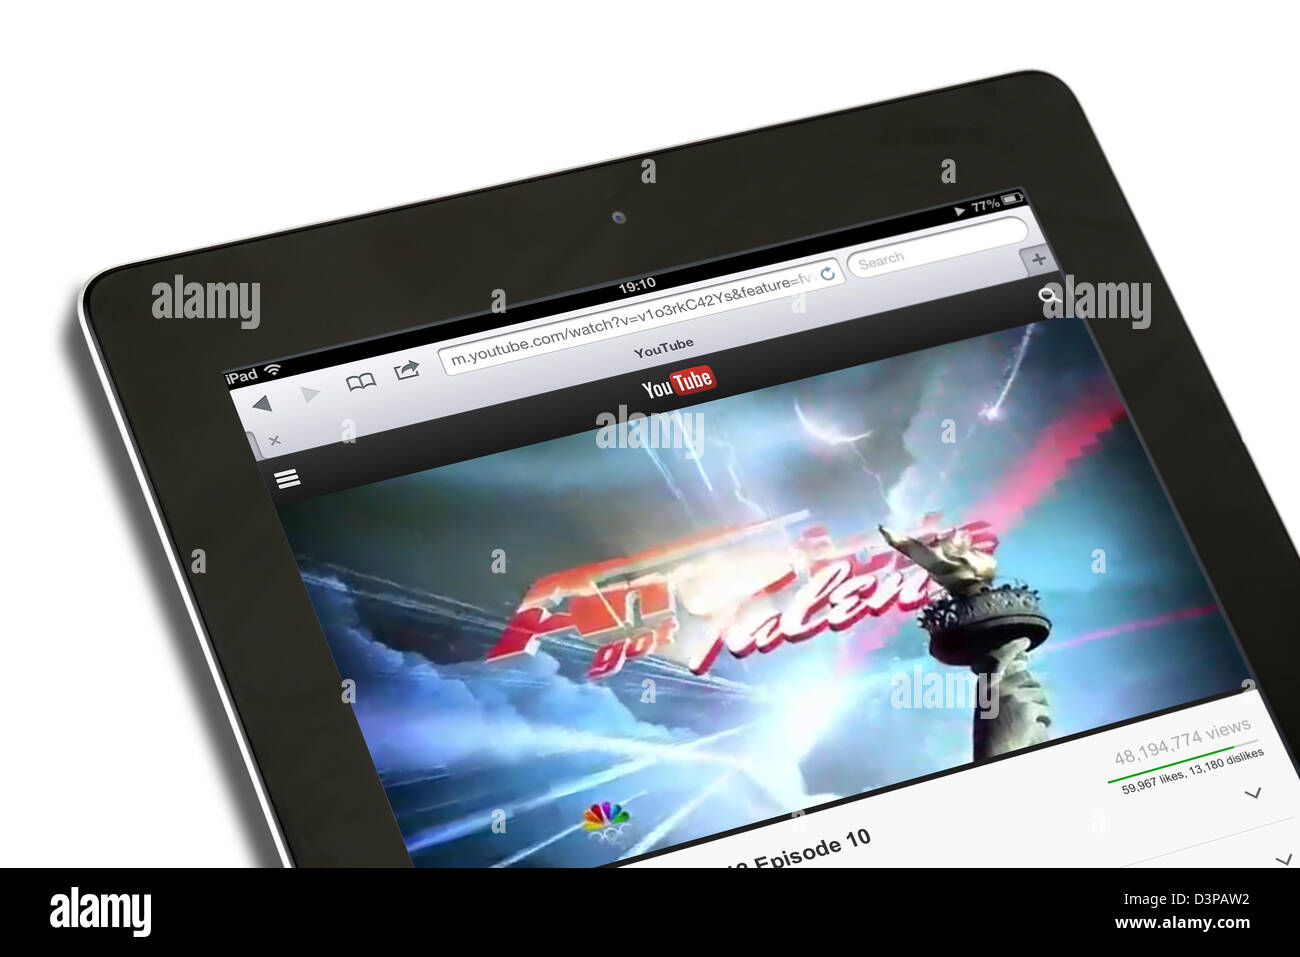 Watching a streaming video of America's Got Talent on YouTube on an iPad - Stock Image